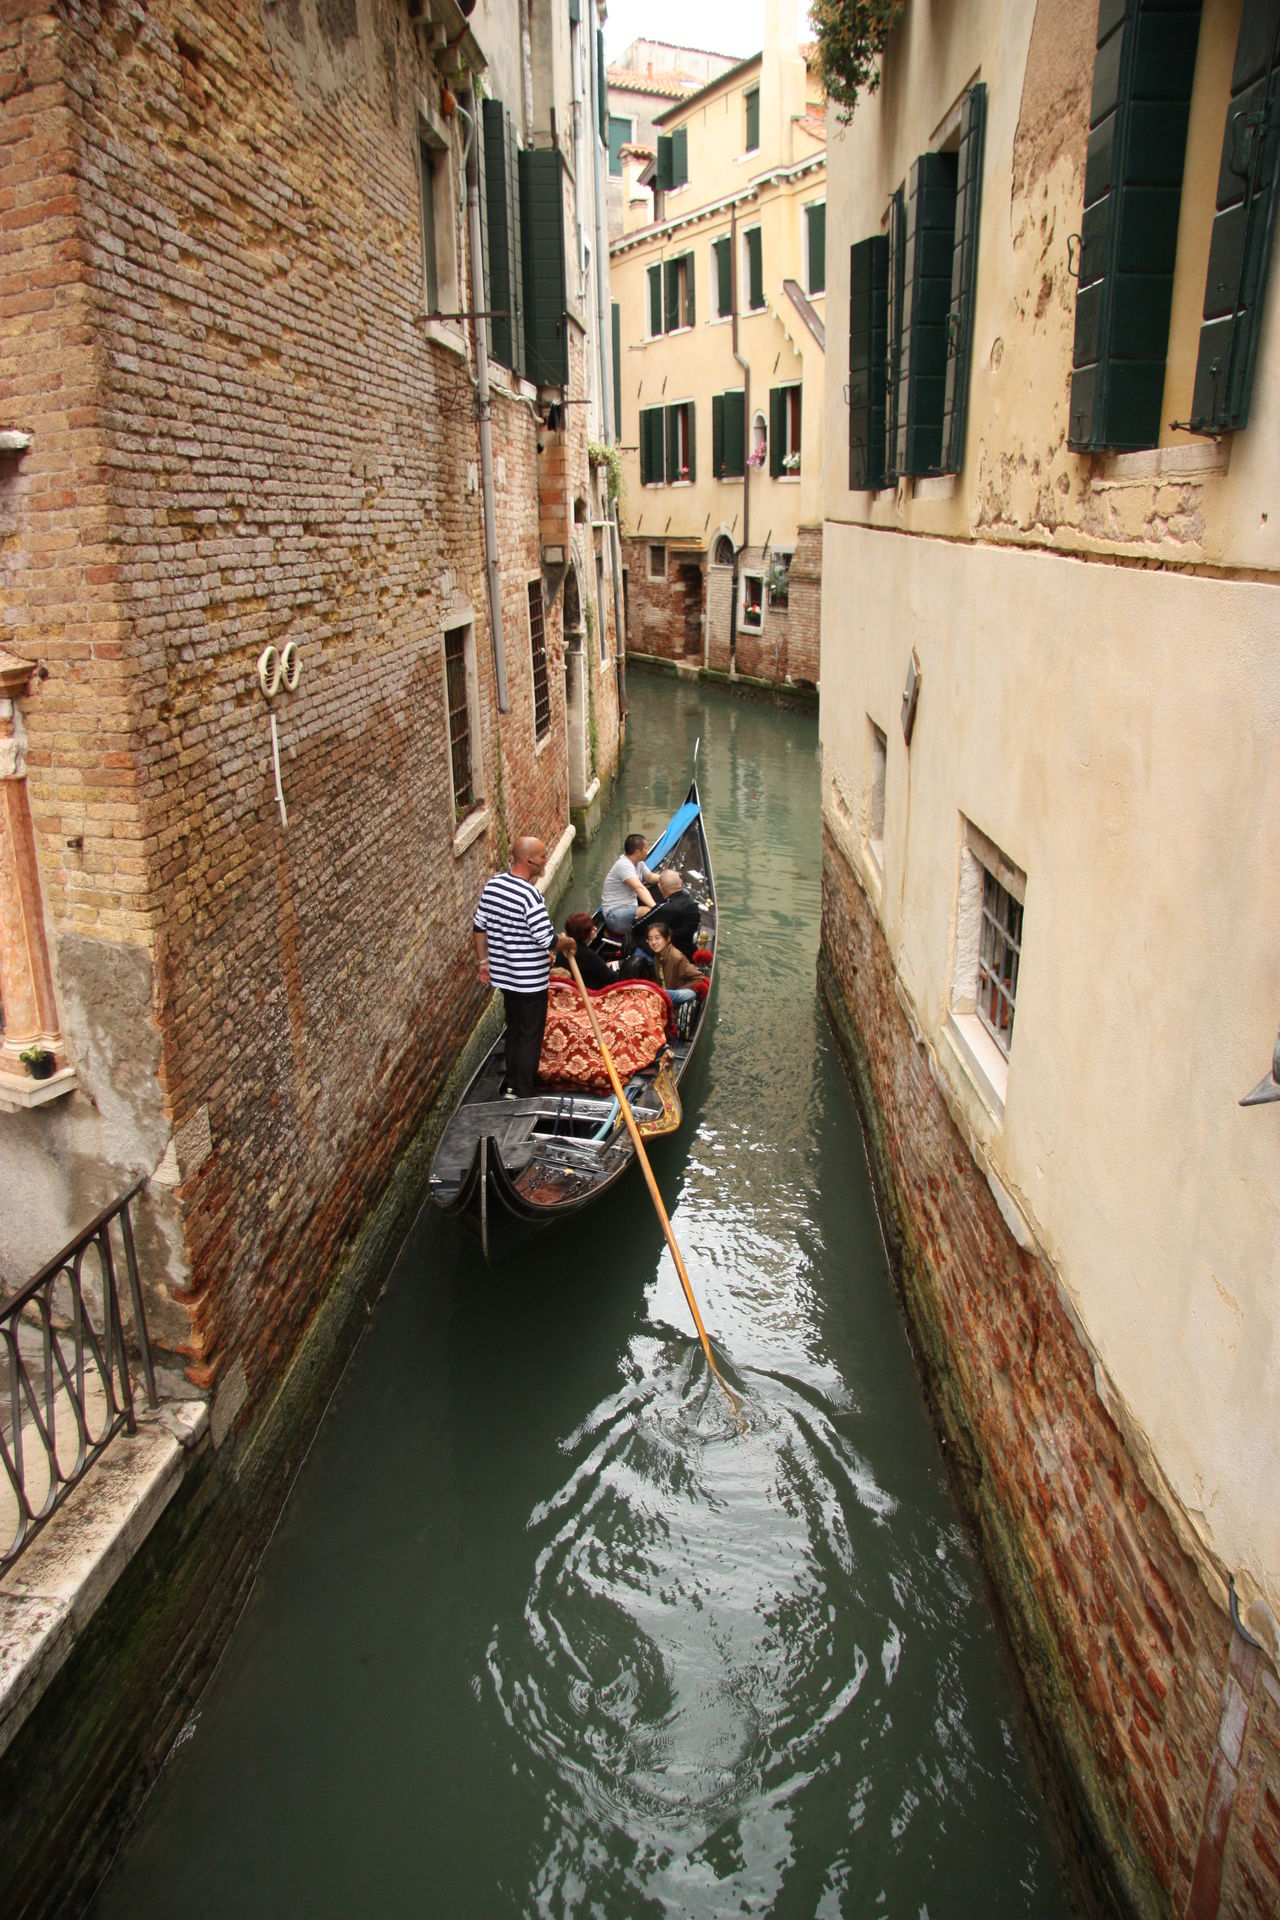 #veneza #Venice #Venezia #Italy #Italia #Europe Architecture Boat Building Exterior Canal Gondola Nautical Vessel Real People Transportation Water